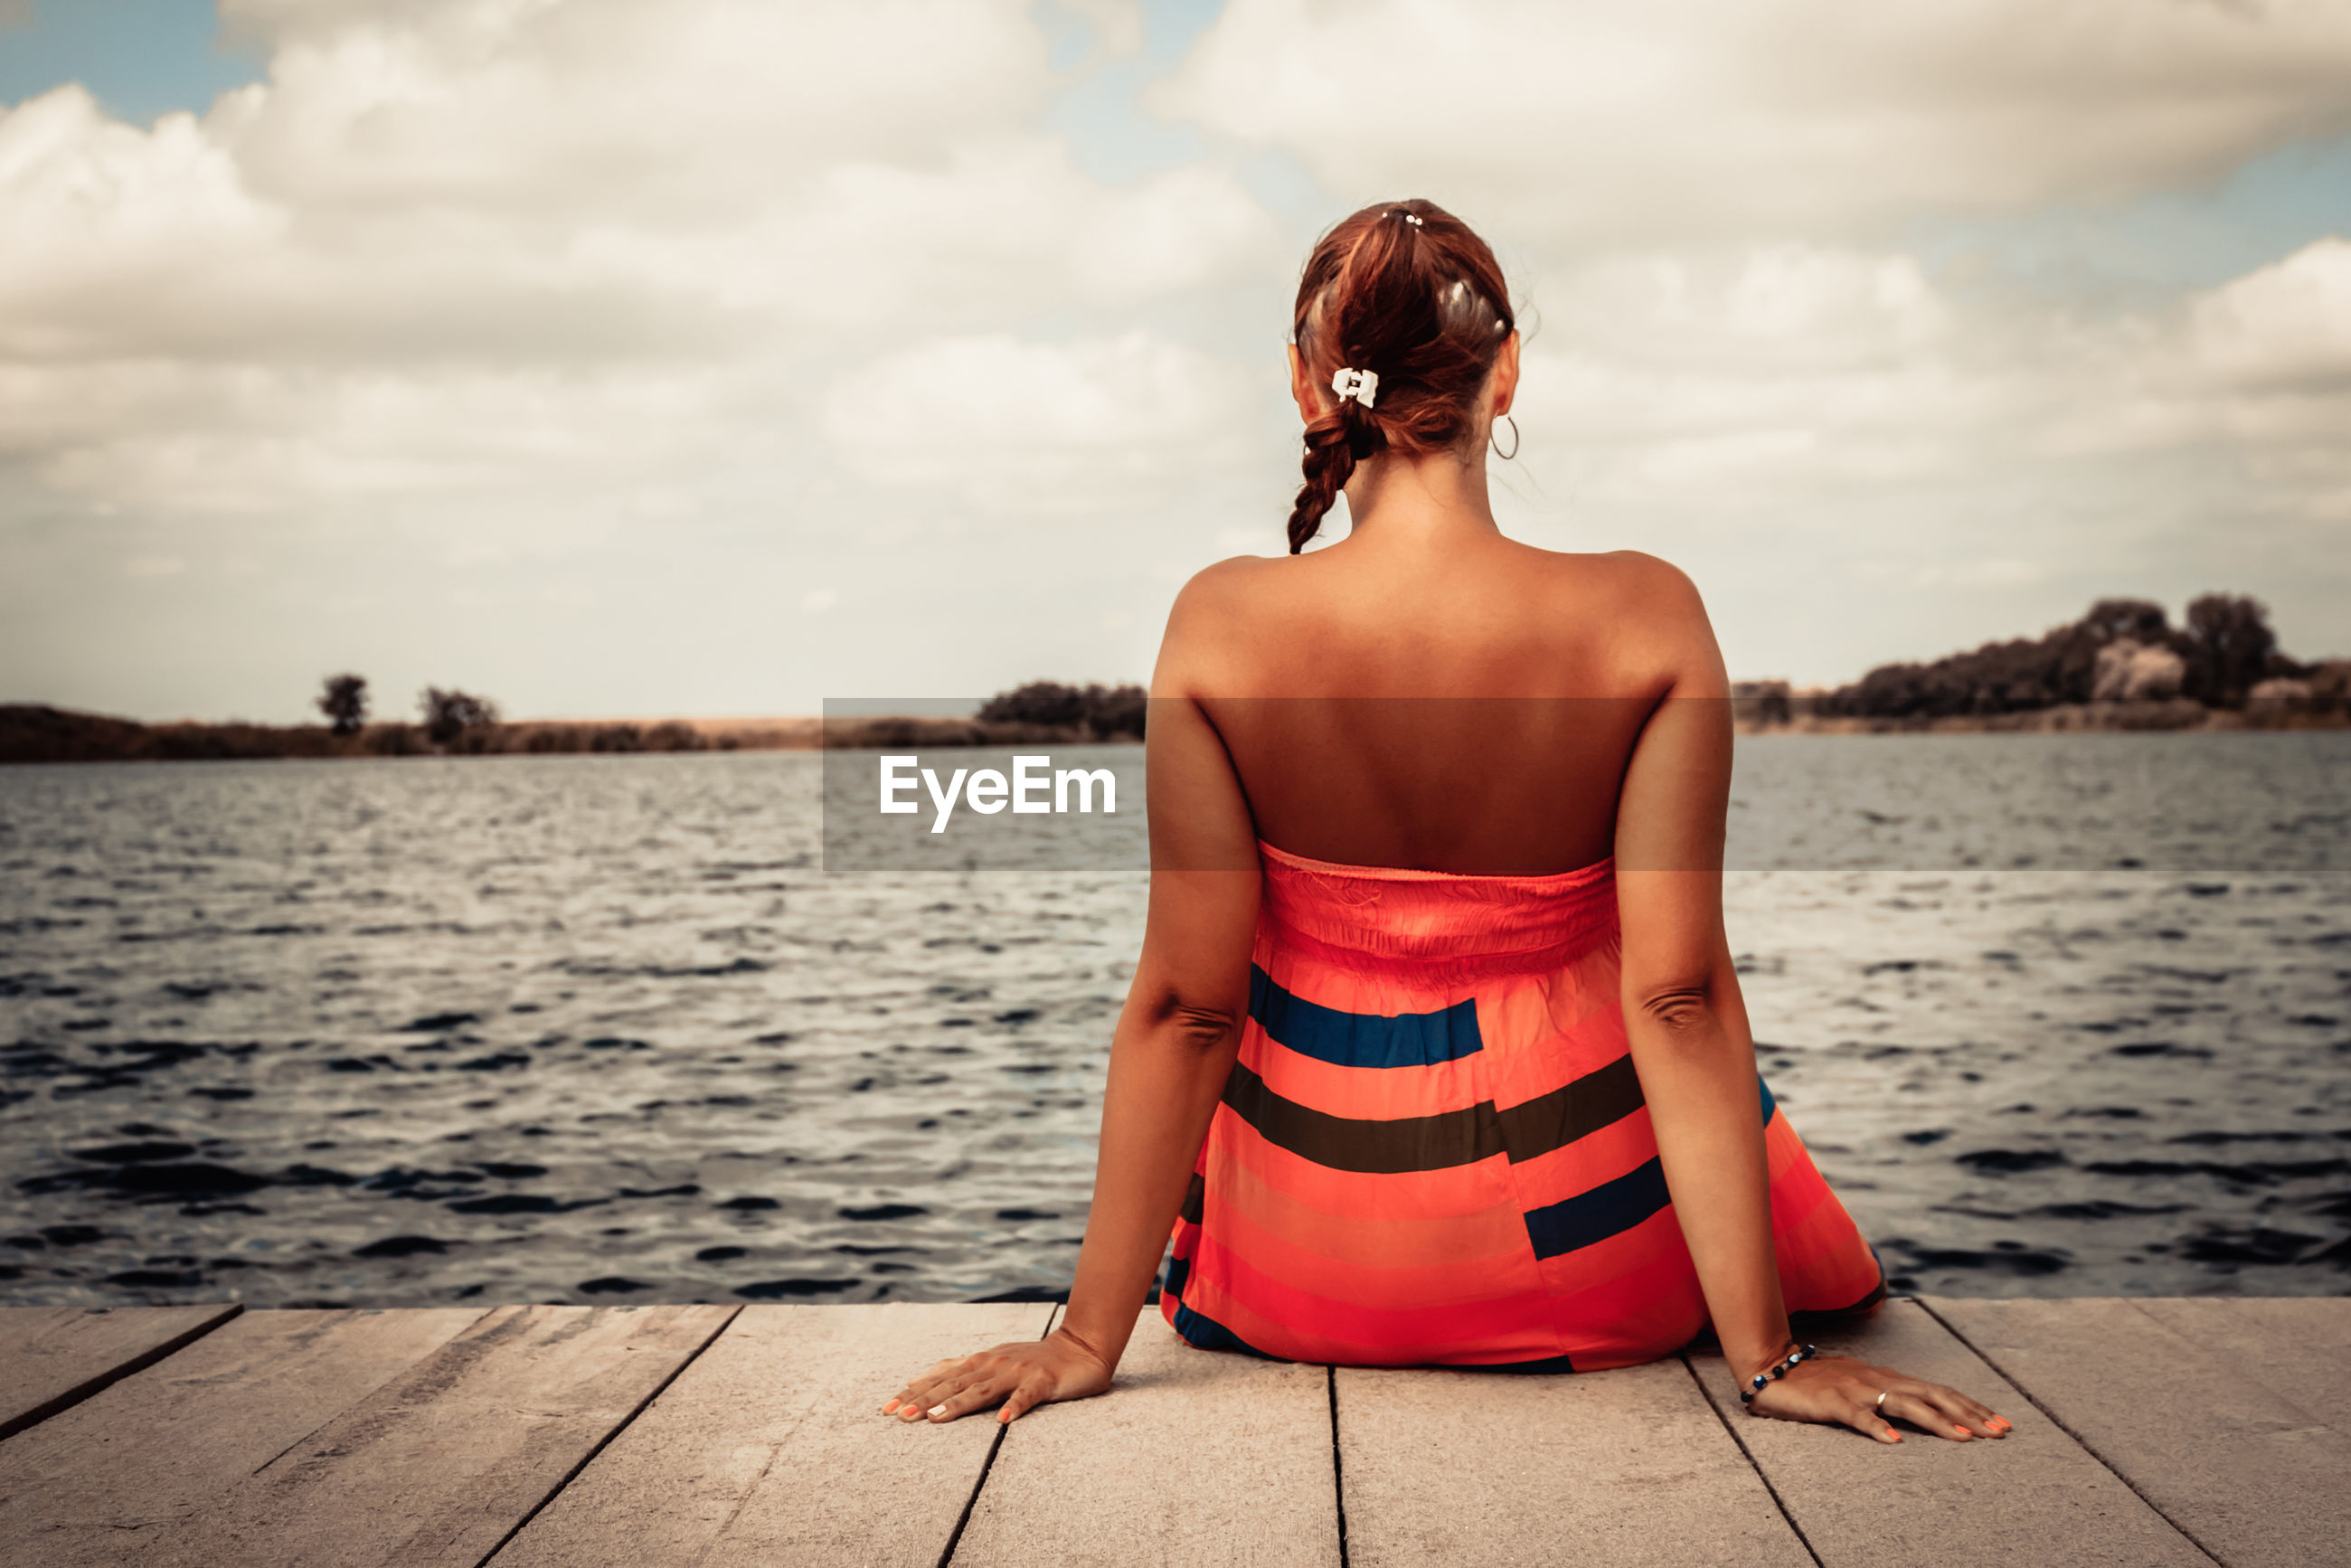 Rear view of woman relaxing on a pier while spending summer day at the beach.